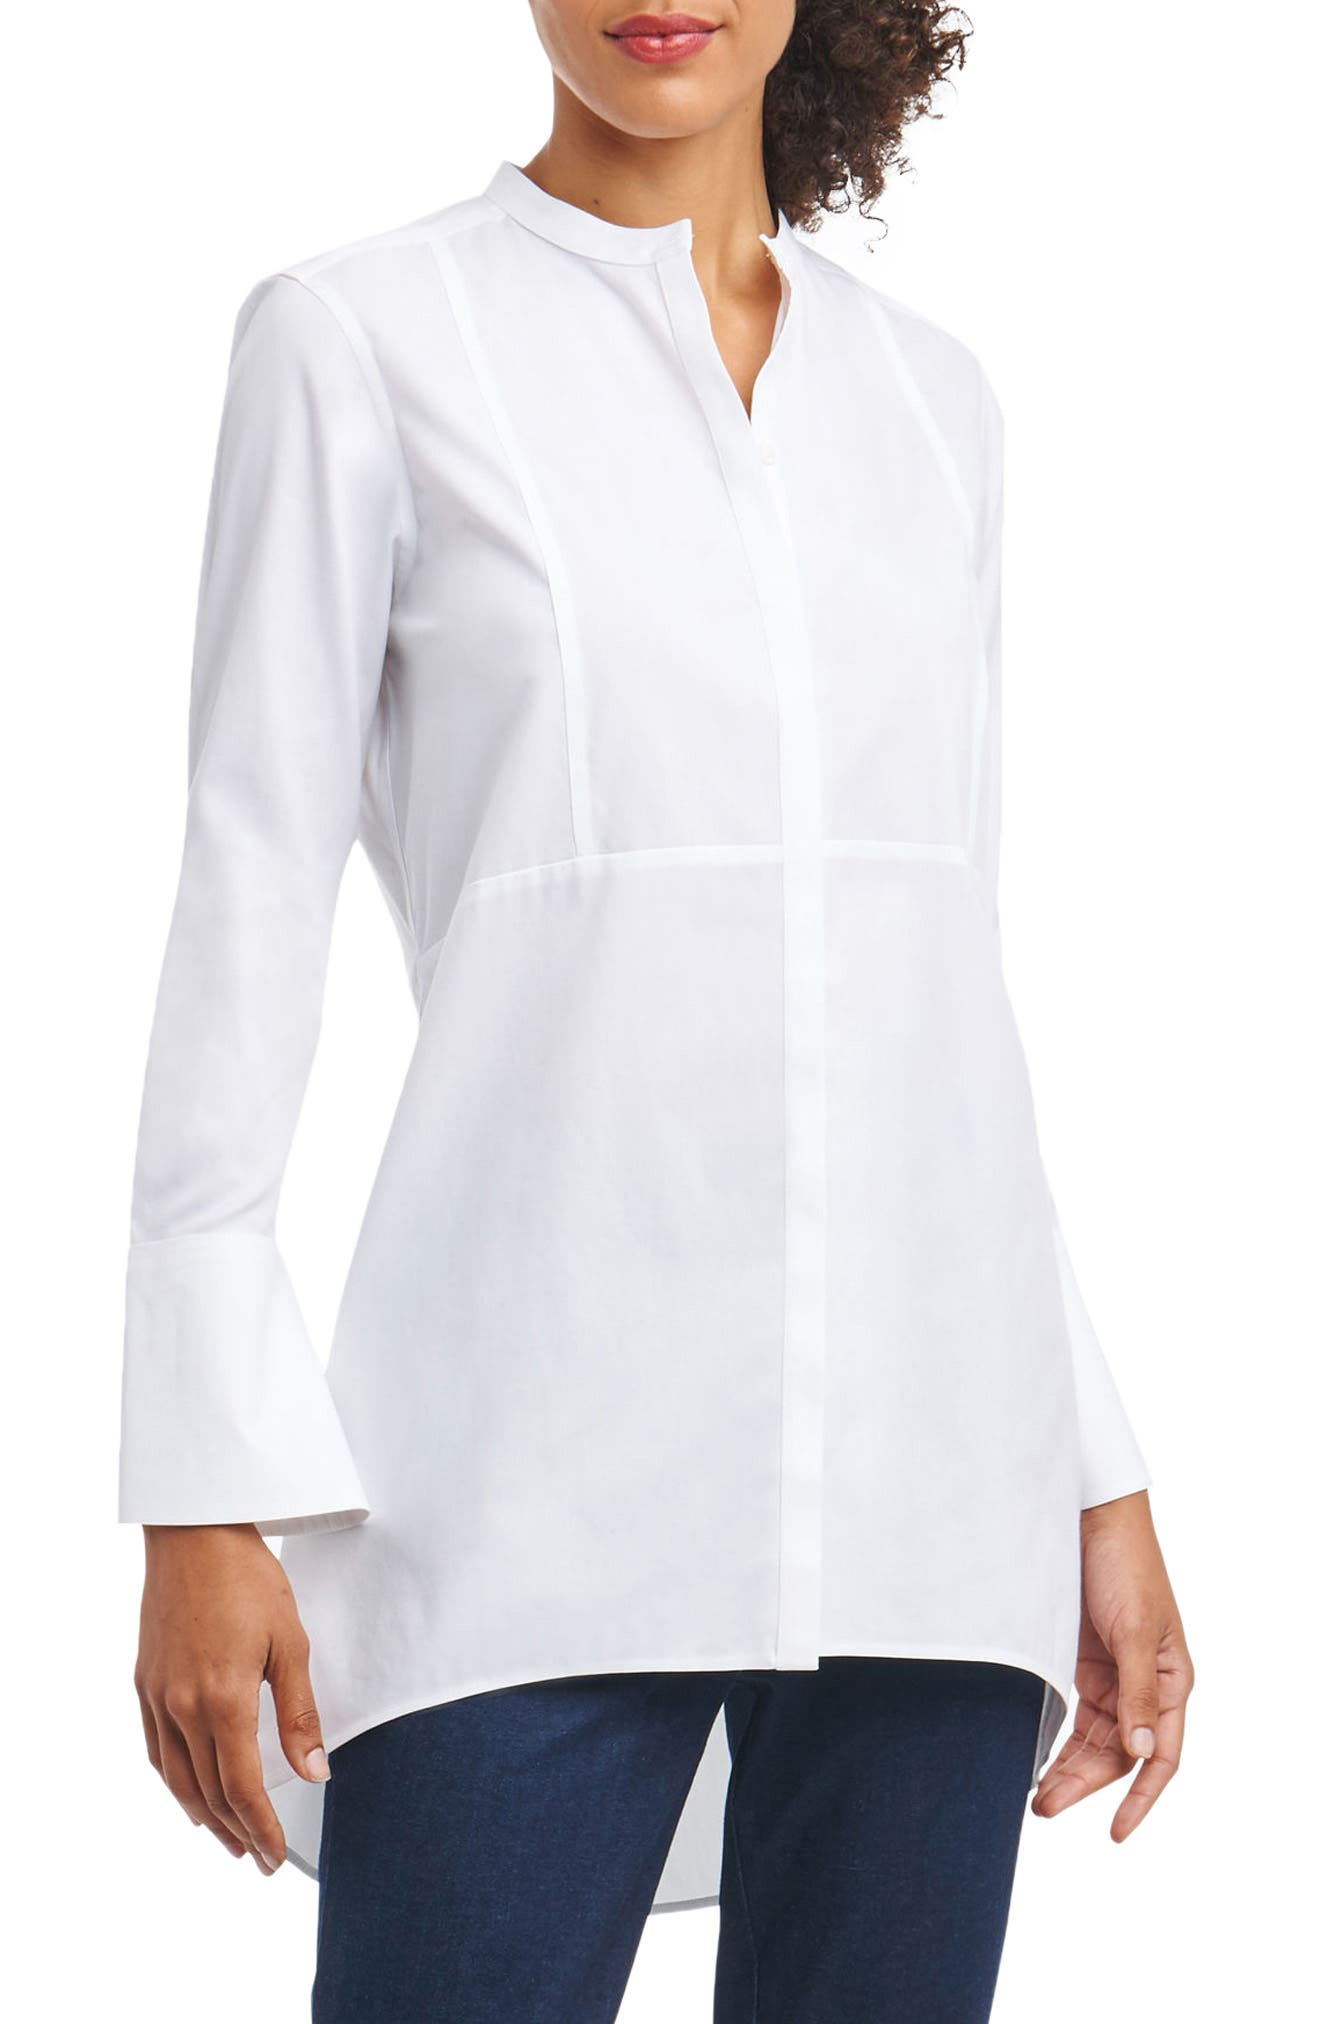 Foxcroft Cally Non-Iron Stretch Cotton Tunic Shirt